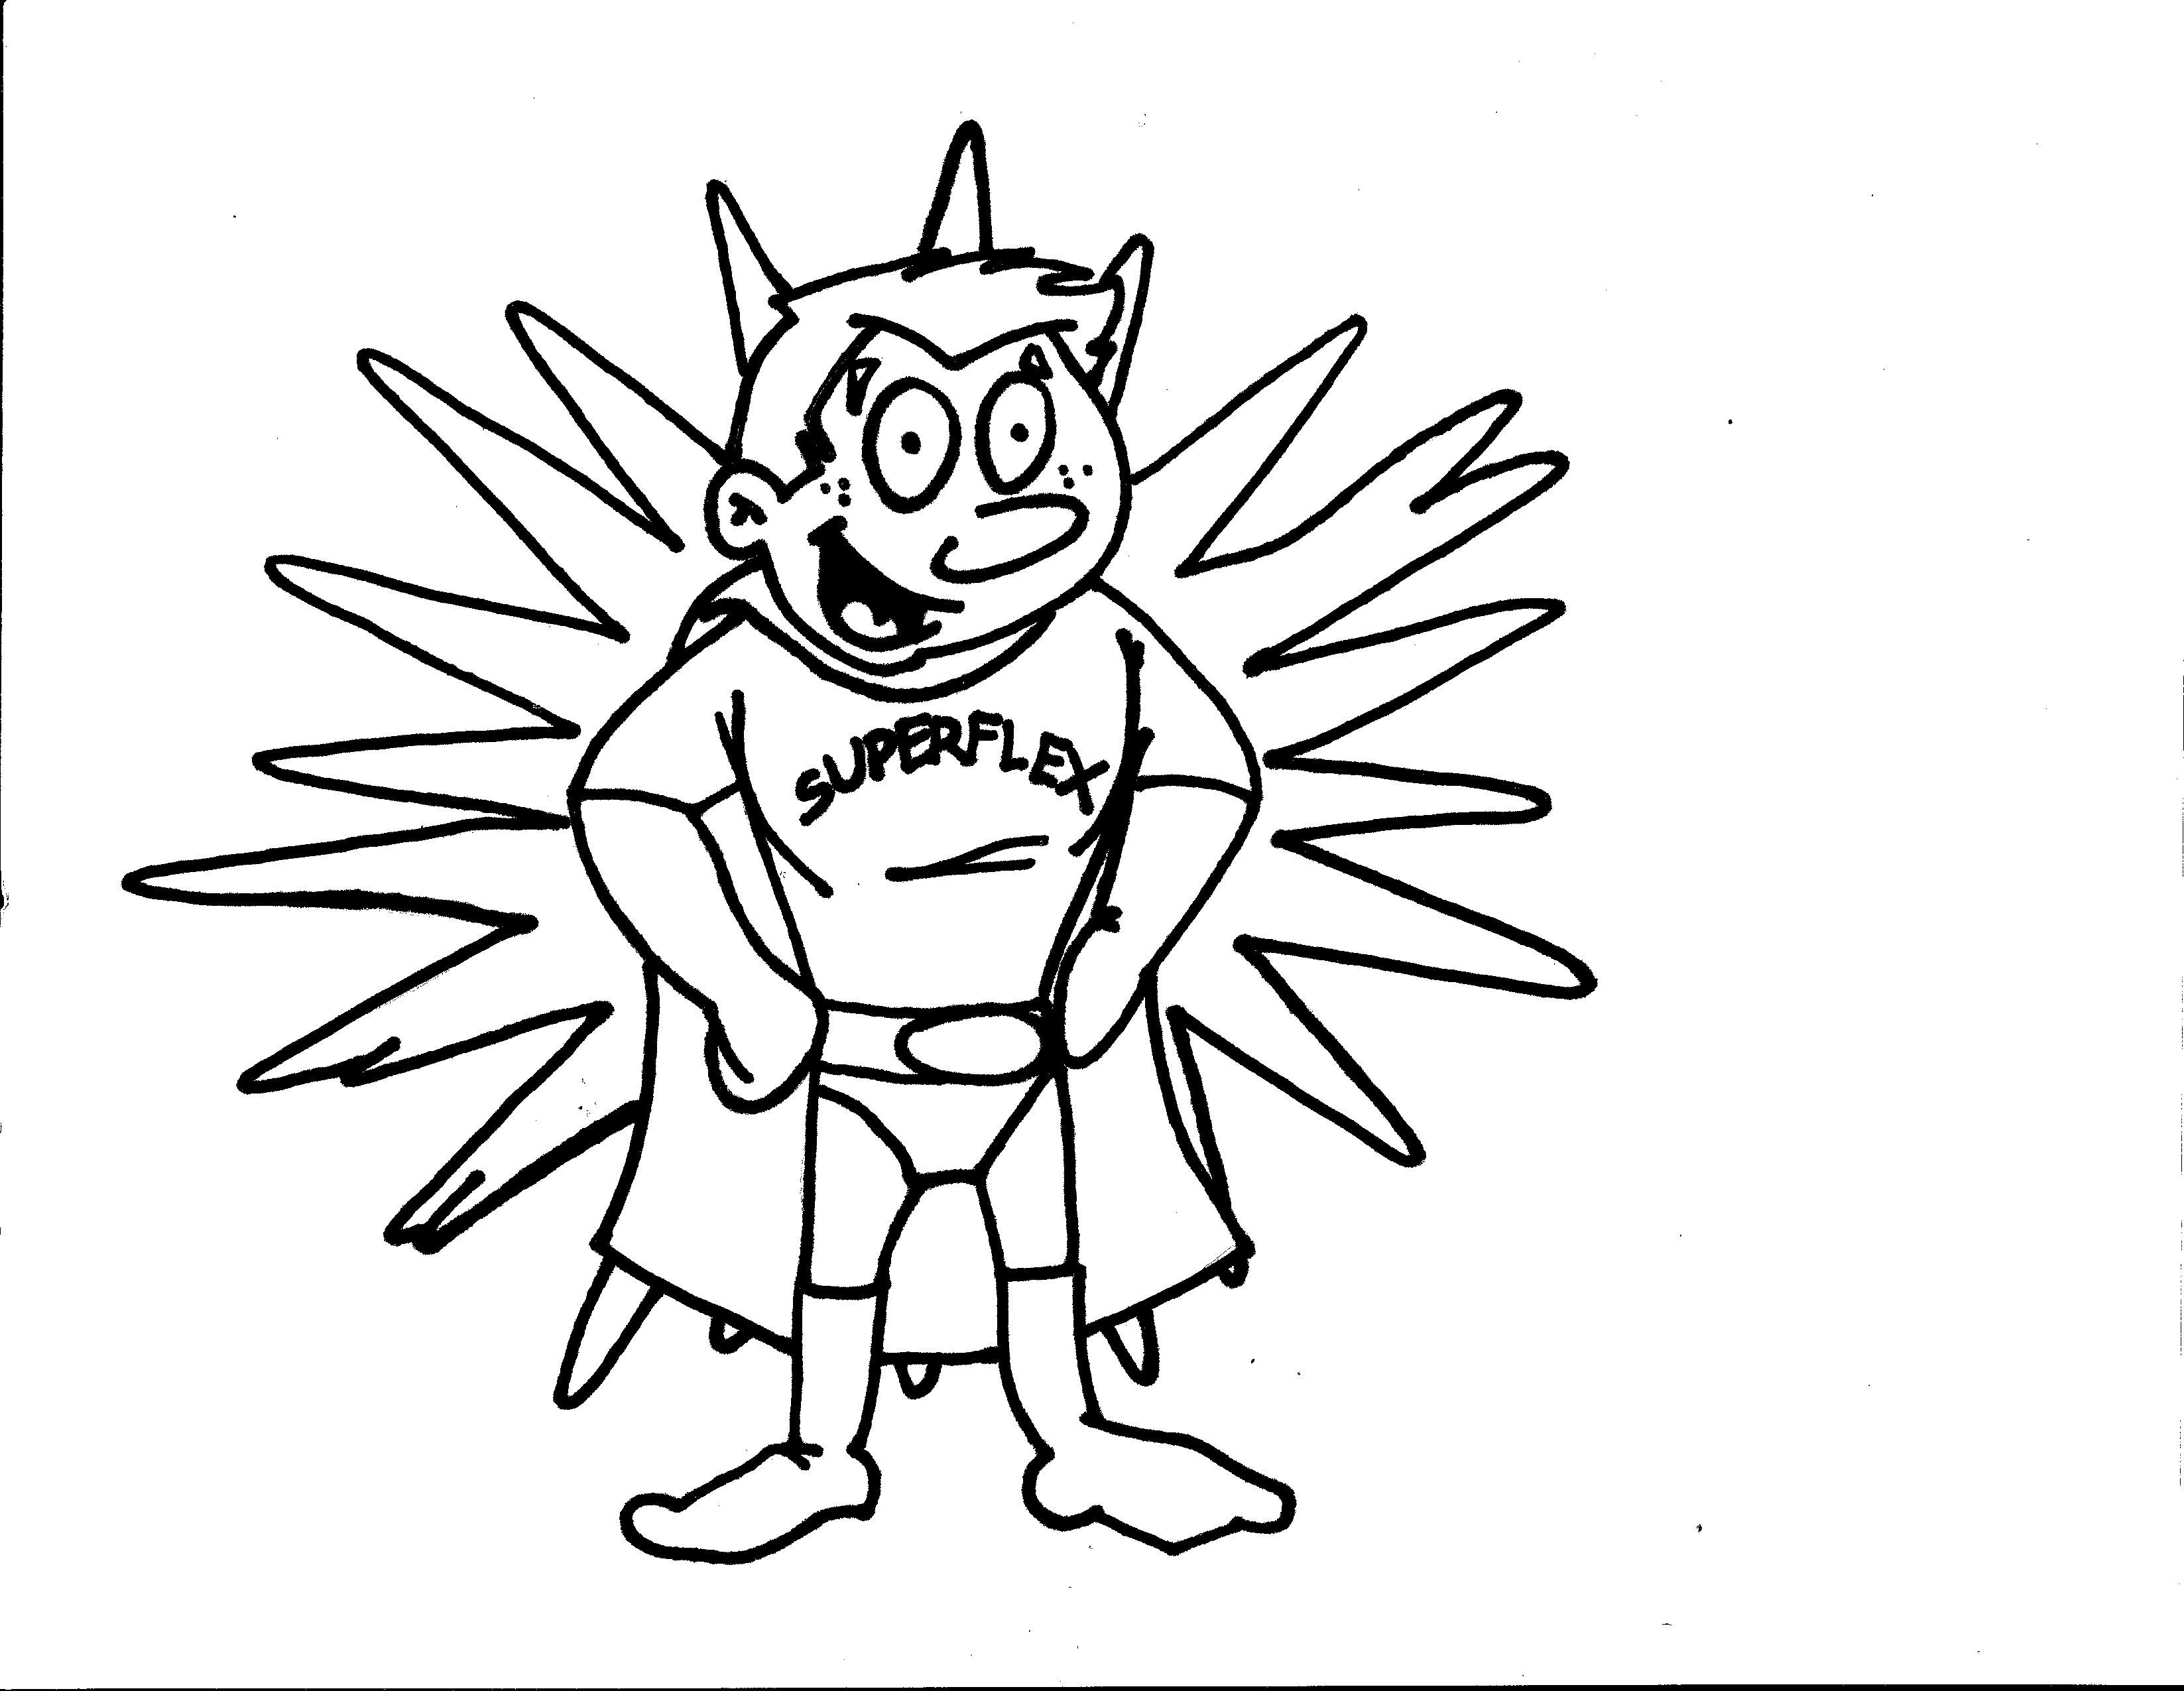 Superflex Thinkables Coloring Pages Coloring Pages